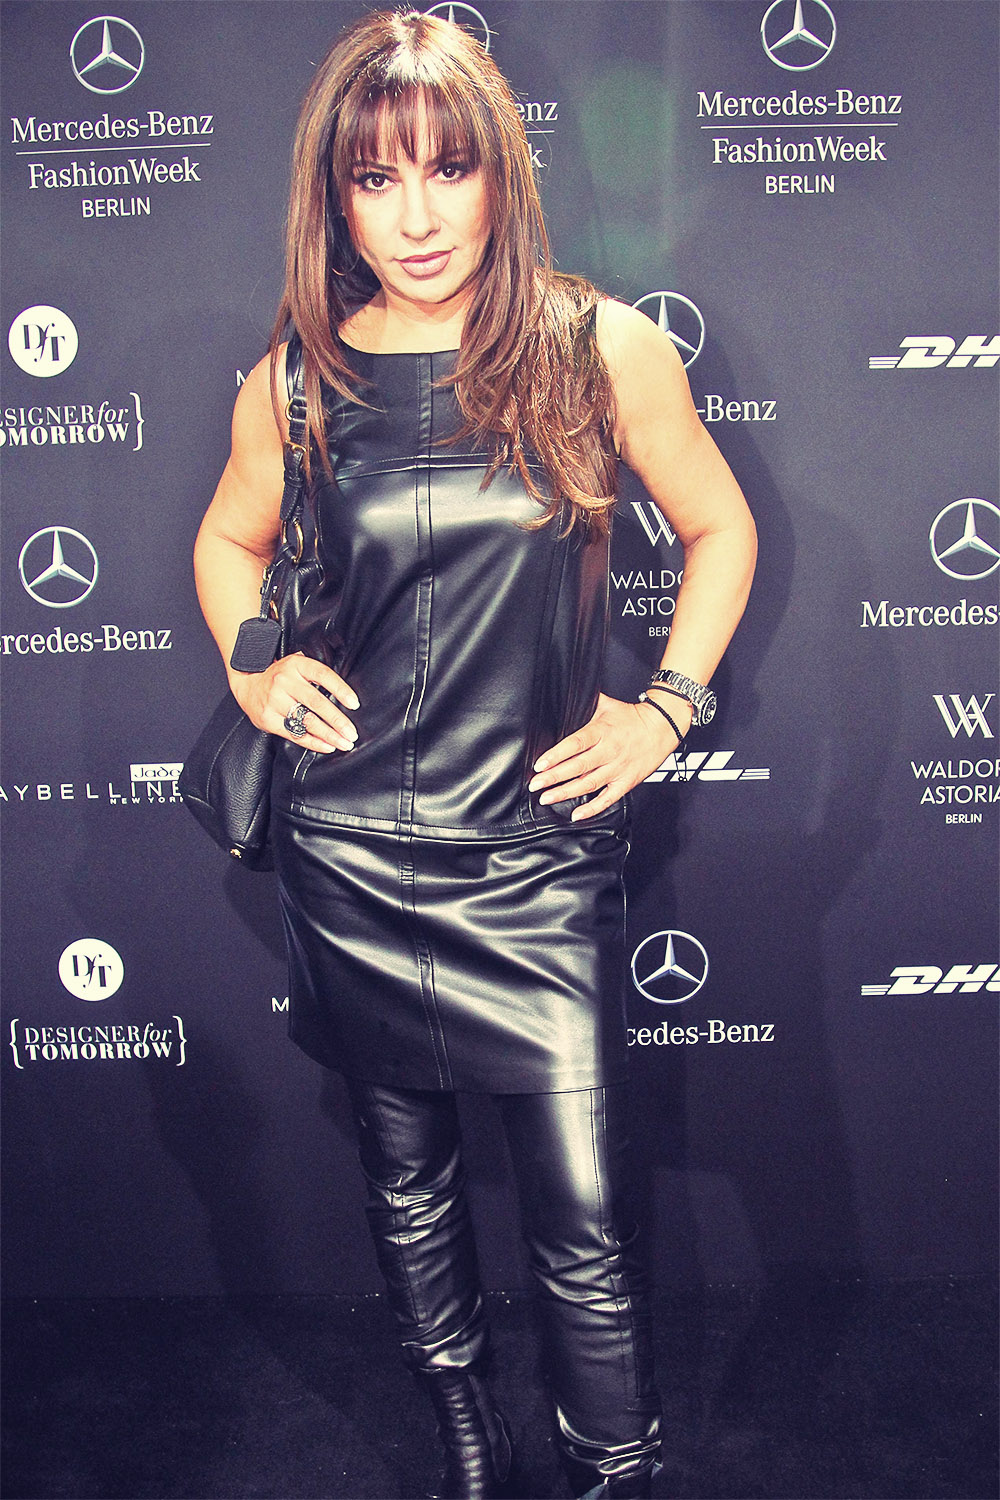 Simone Thomalla attends Mercedes-Benz Fashion Week